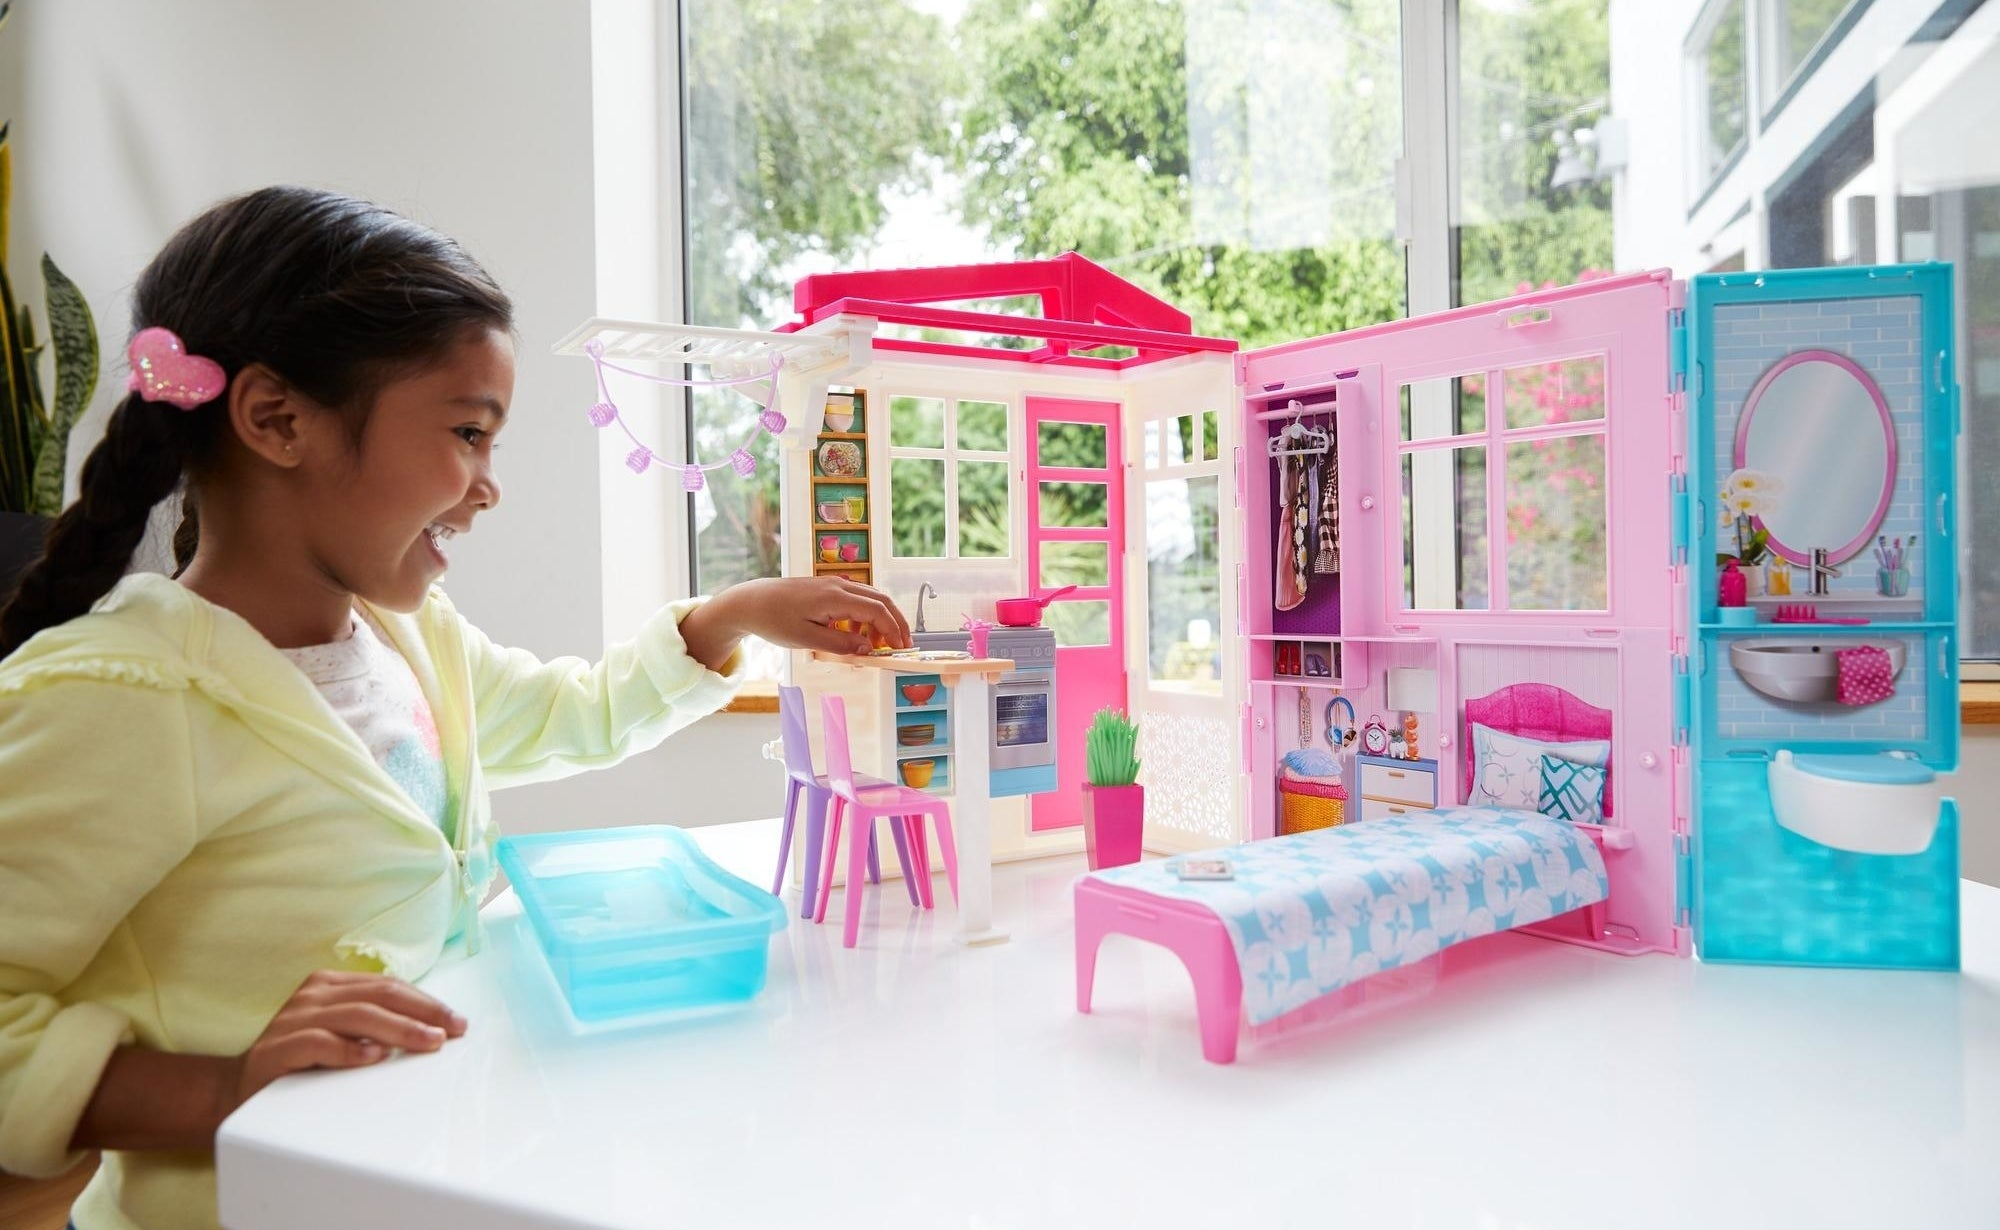 Child playing with the large pink house setup